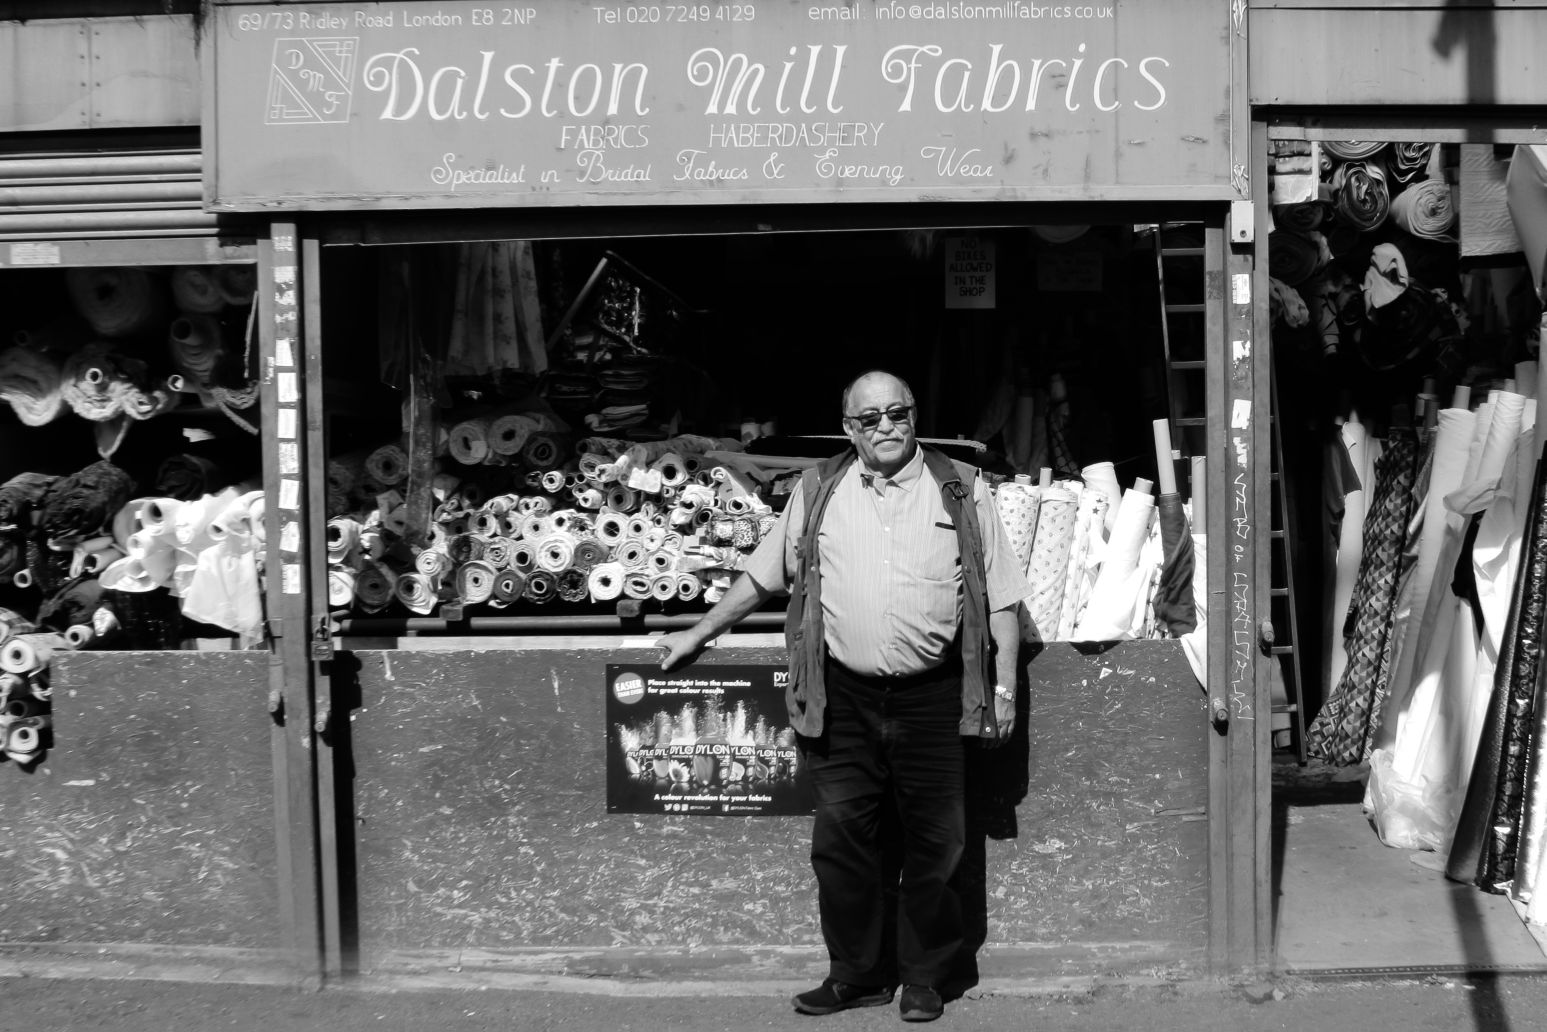 Dalston Mill Fabrics Shop front with Edward